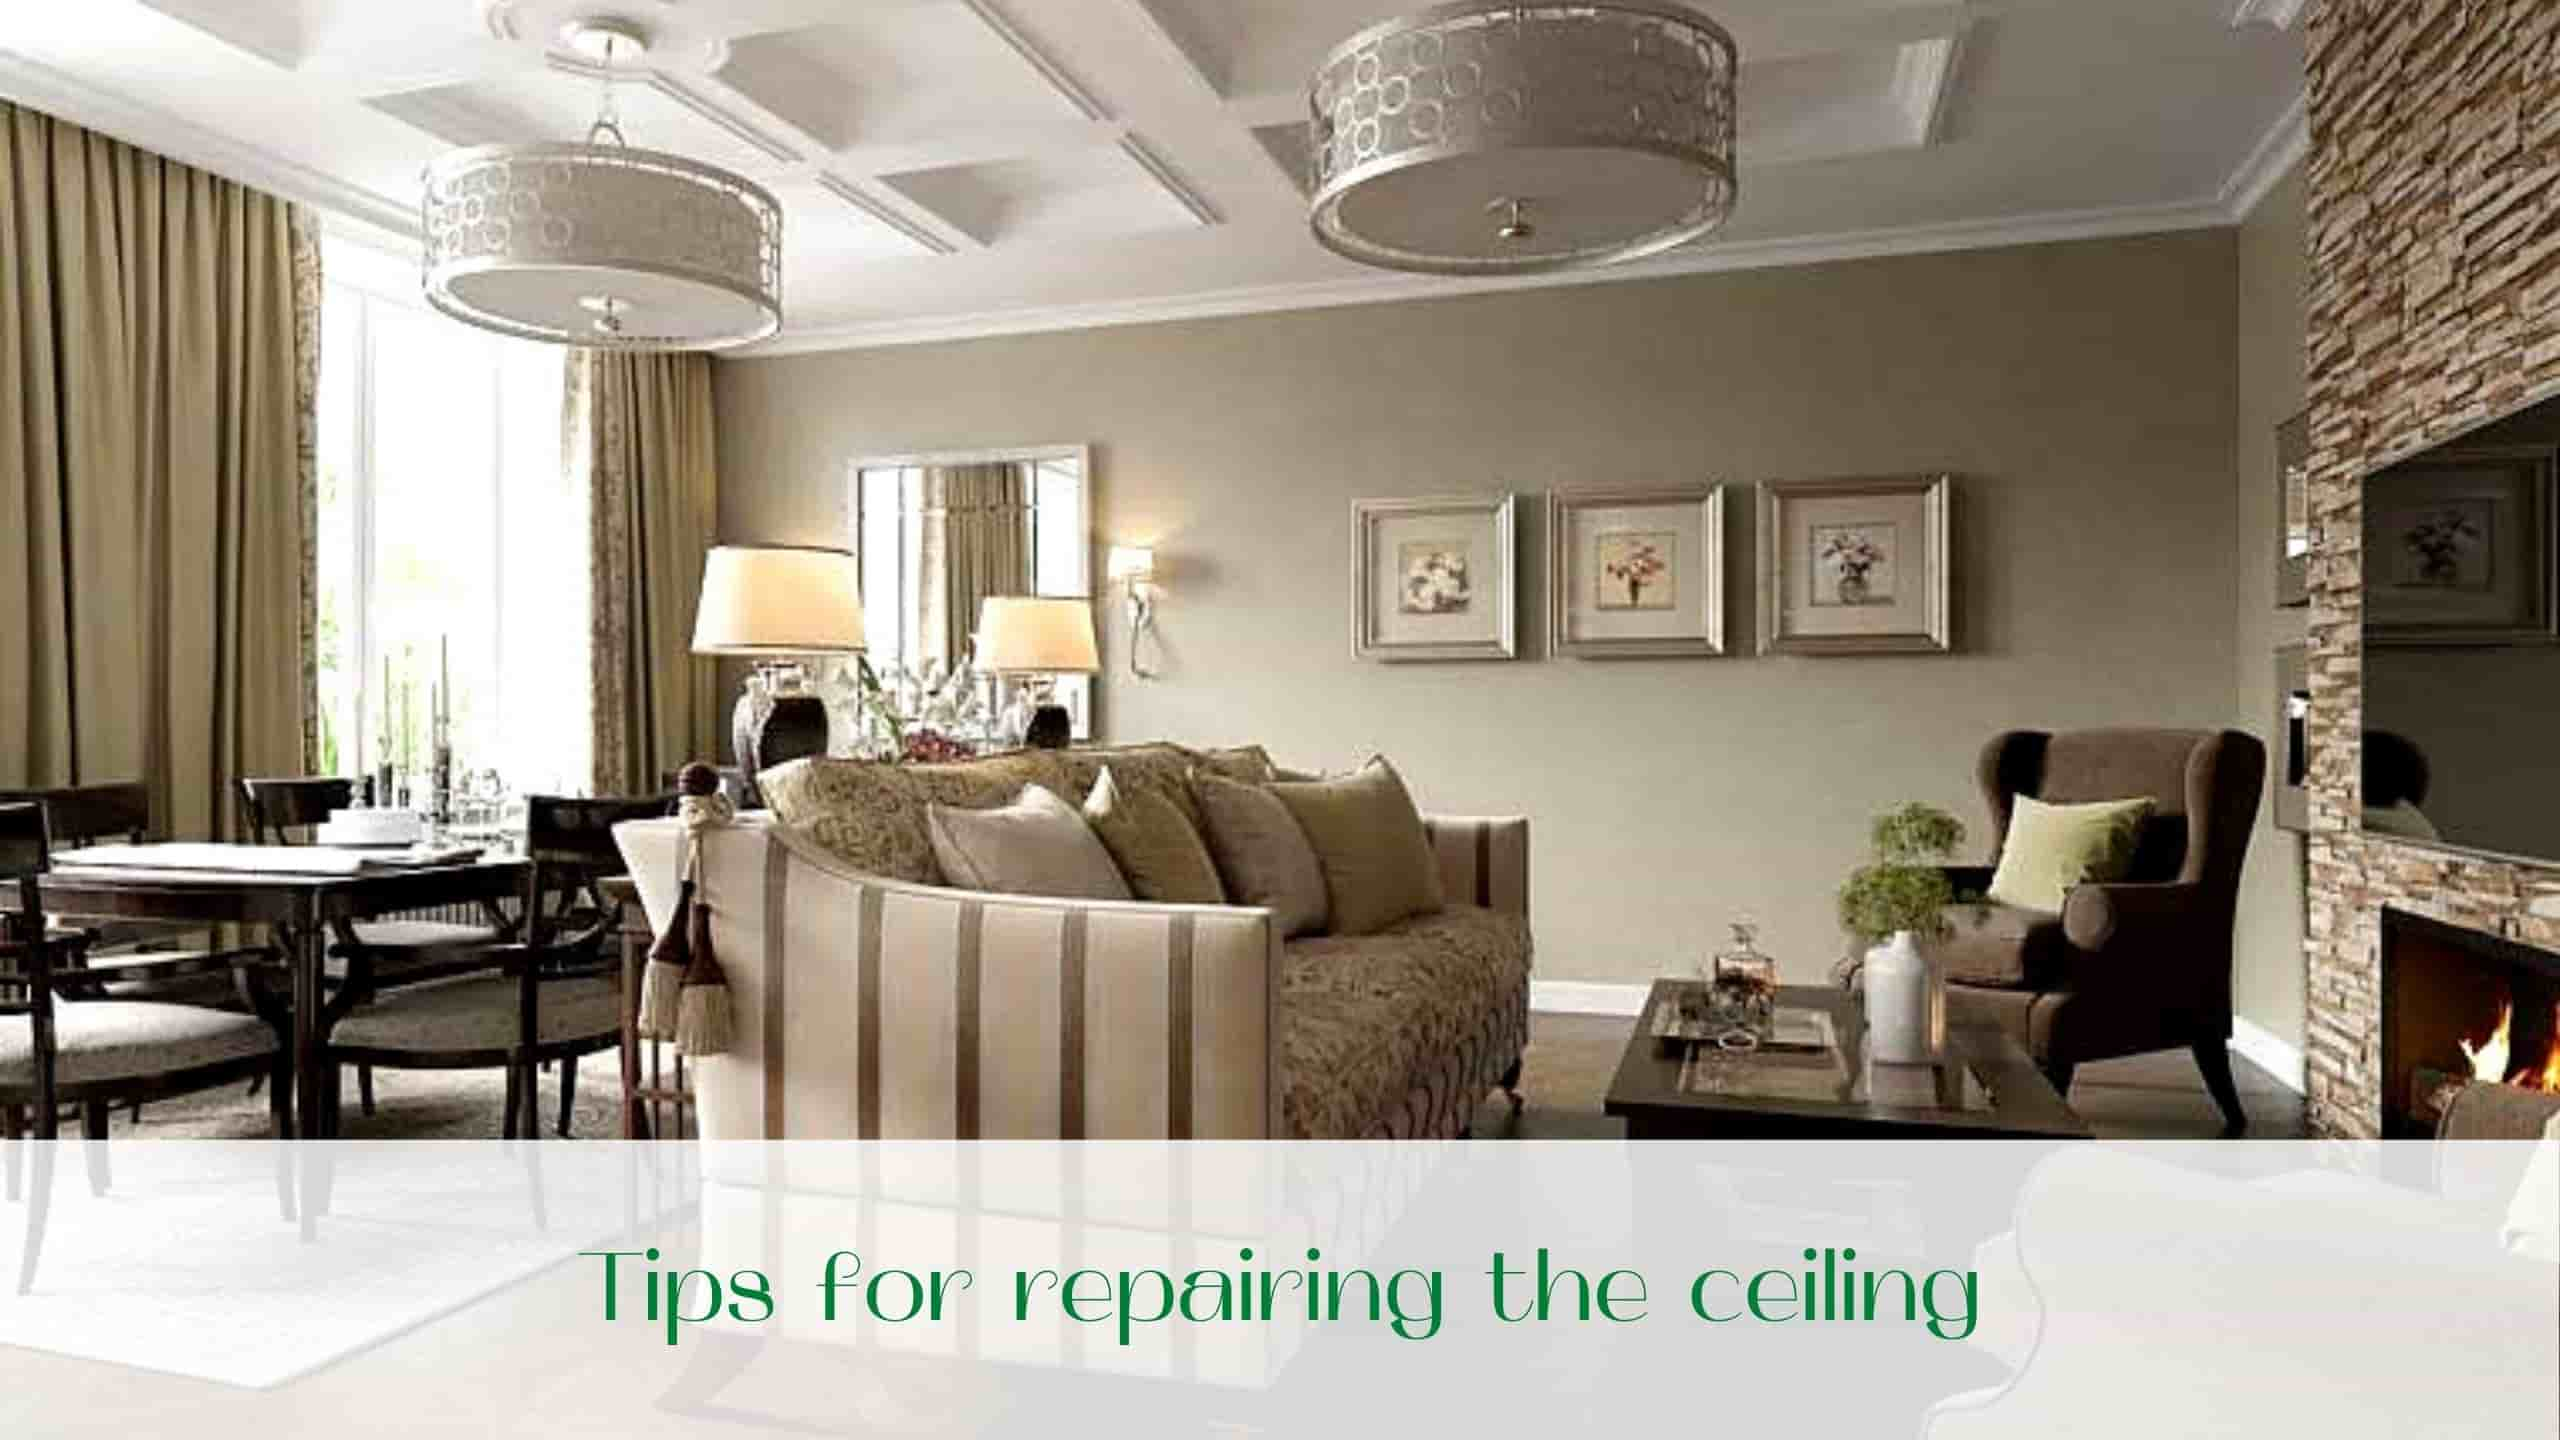 image-Tips-for-repairing-the-ceiling